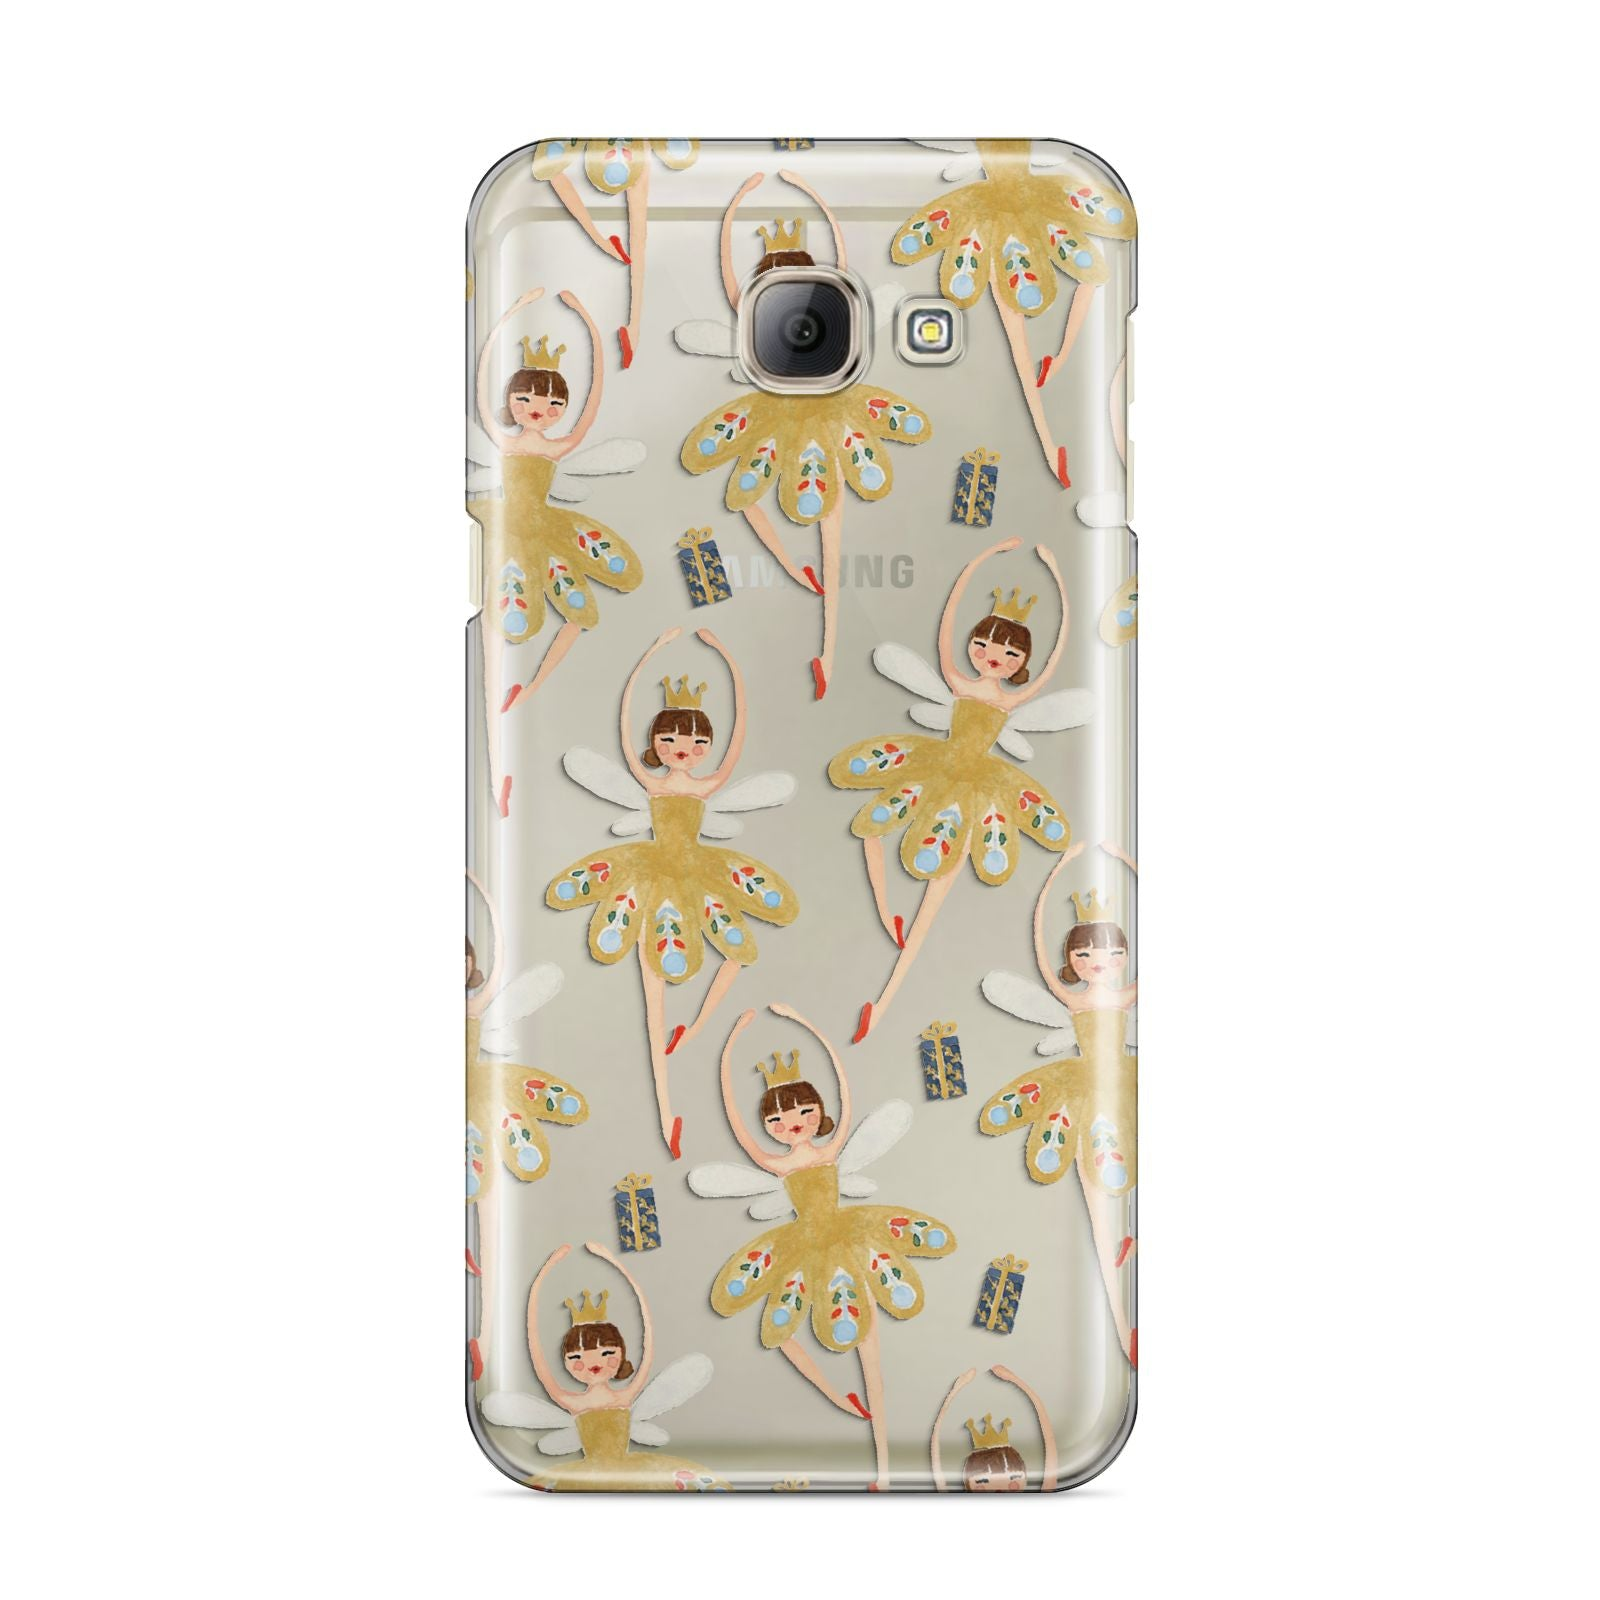 Dancing ballerina princess Samsung Galaxy A8 2016 Case